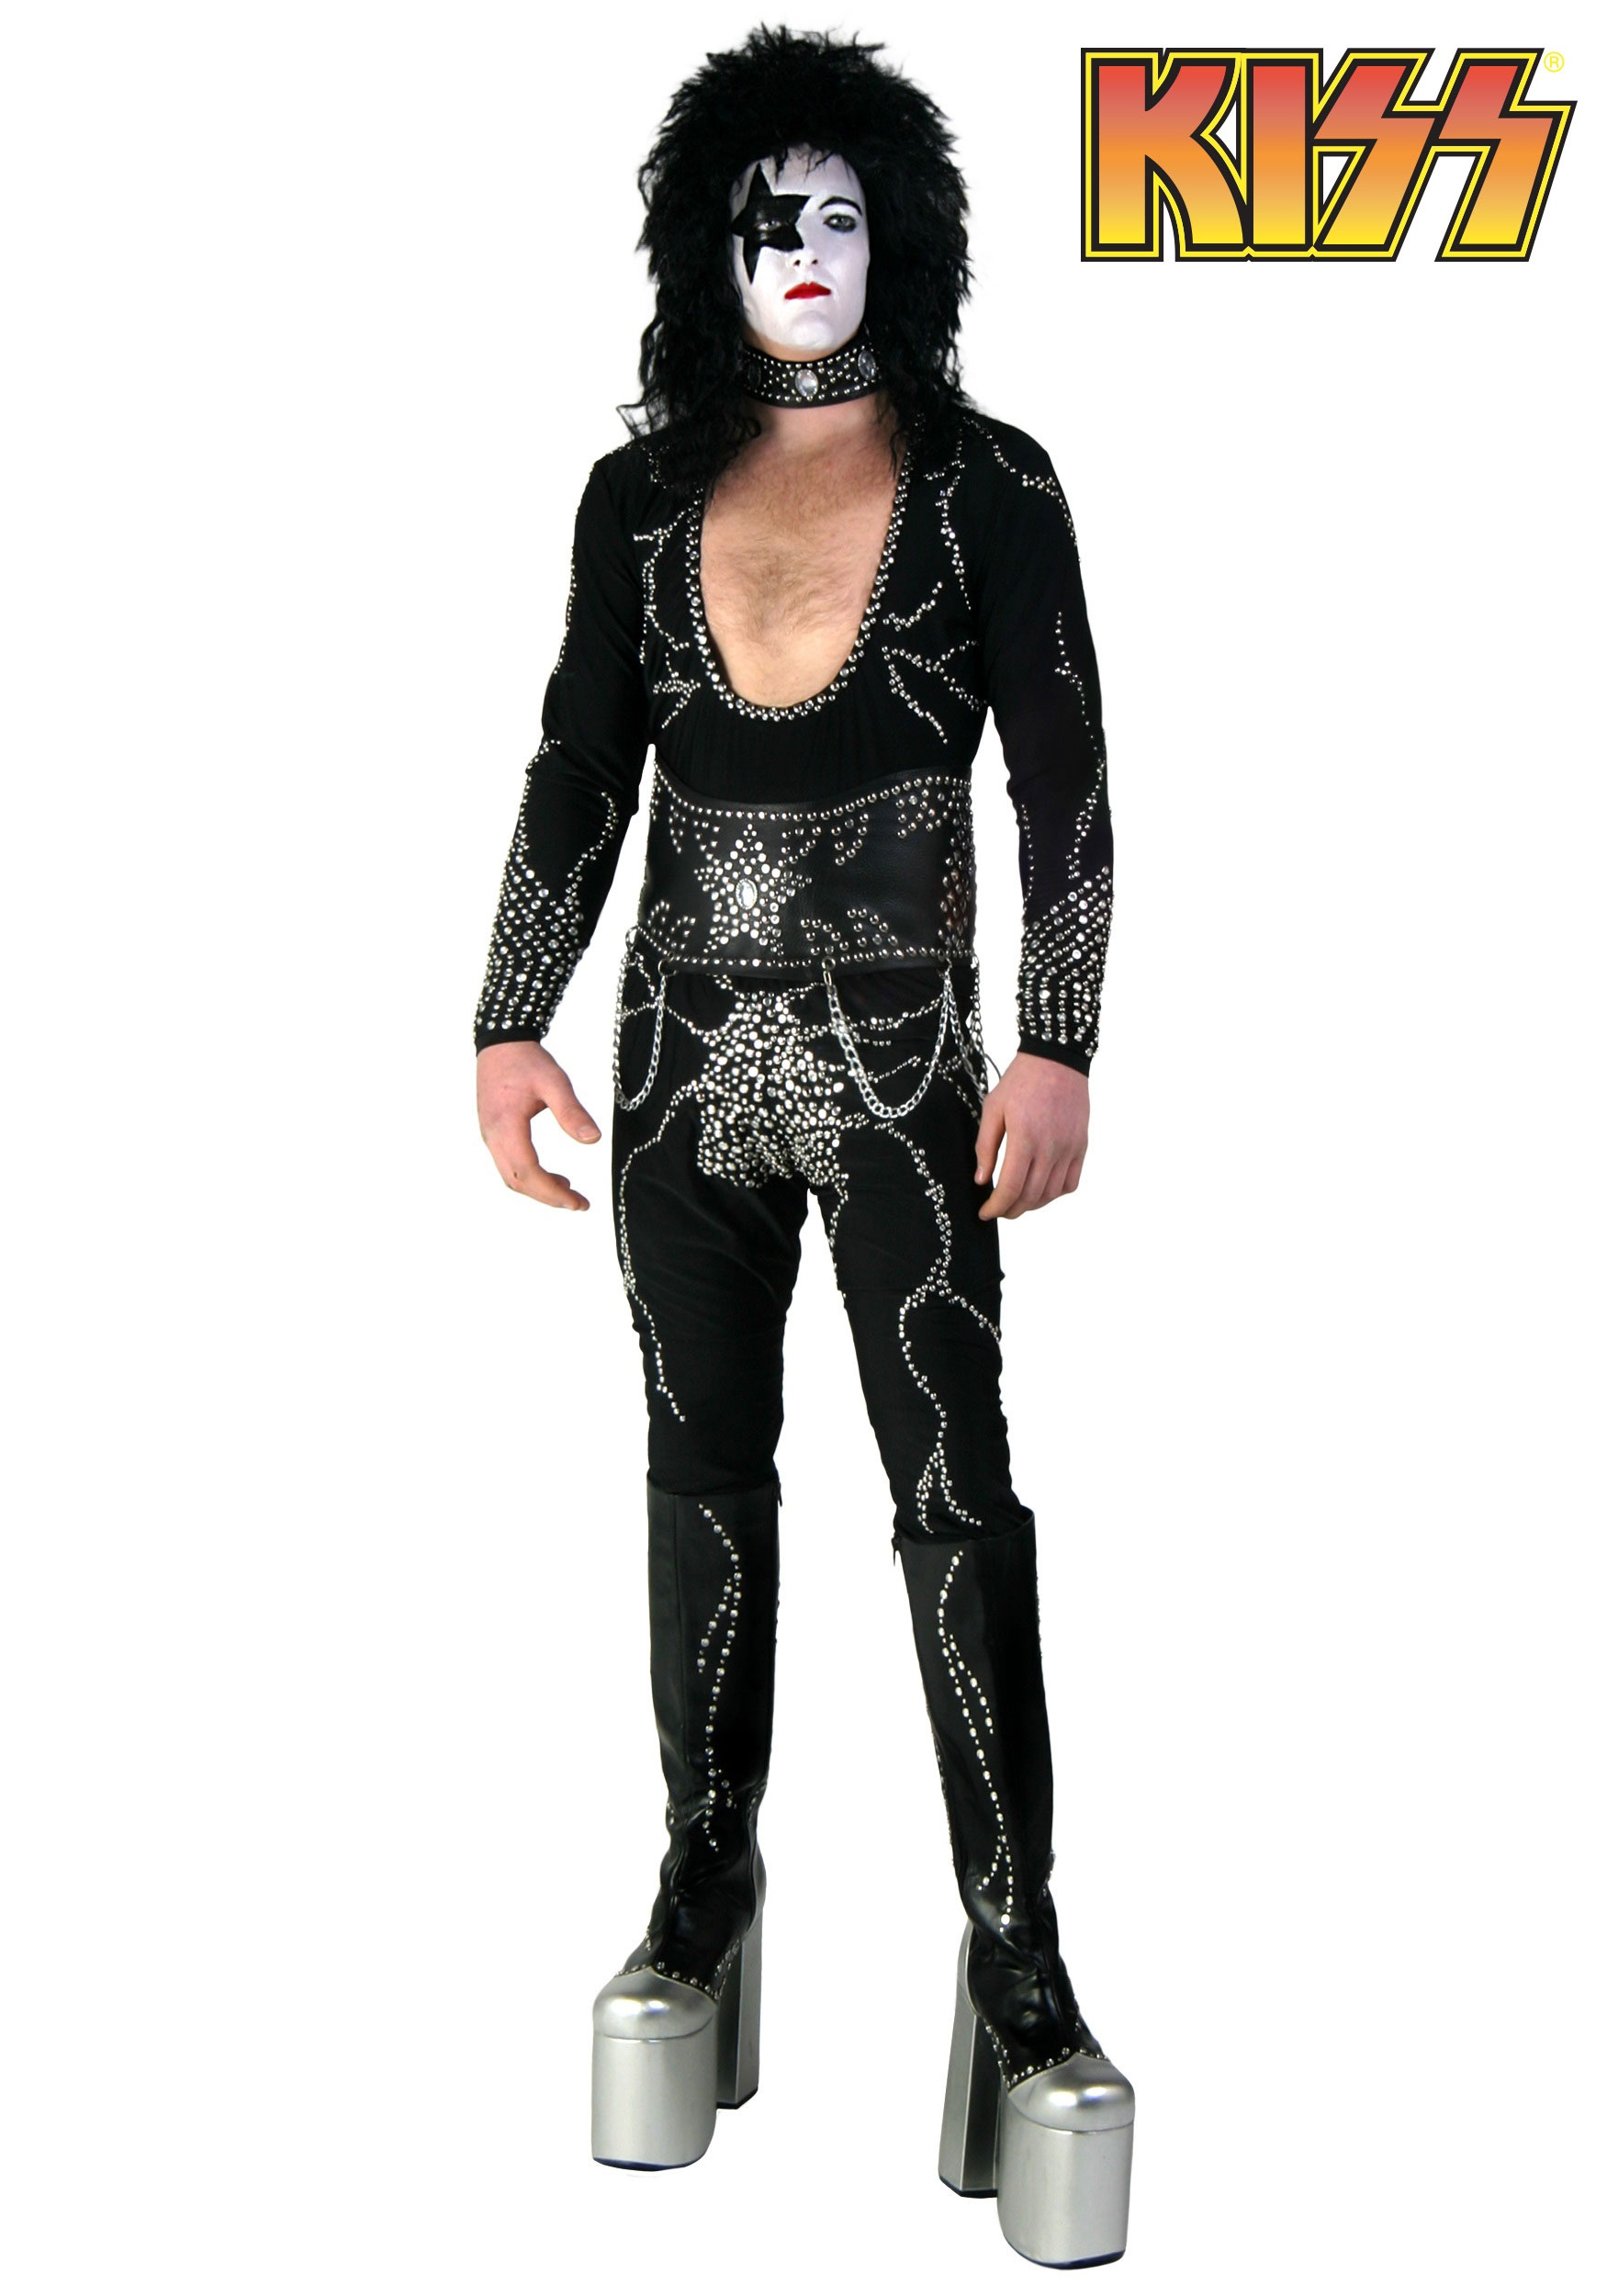 f91e93b8a1a Adult Authentic Starchild Destroyer Costume Sc 1 St Halloween Costumes